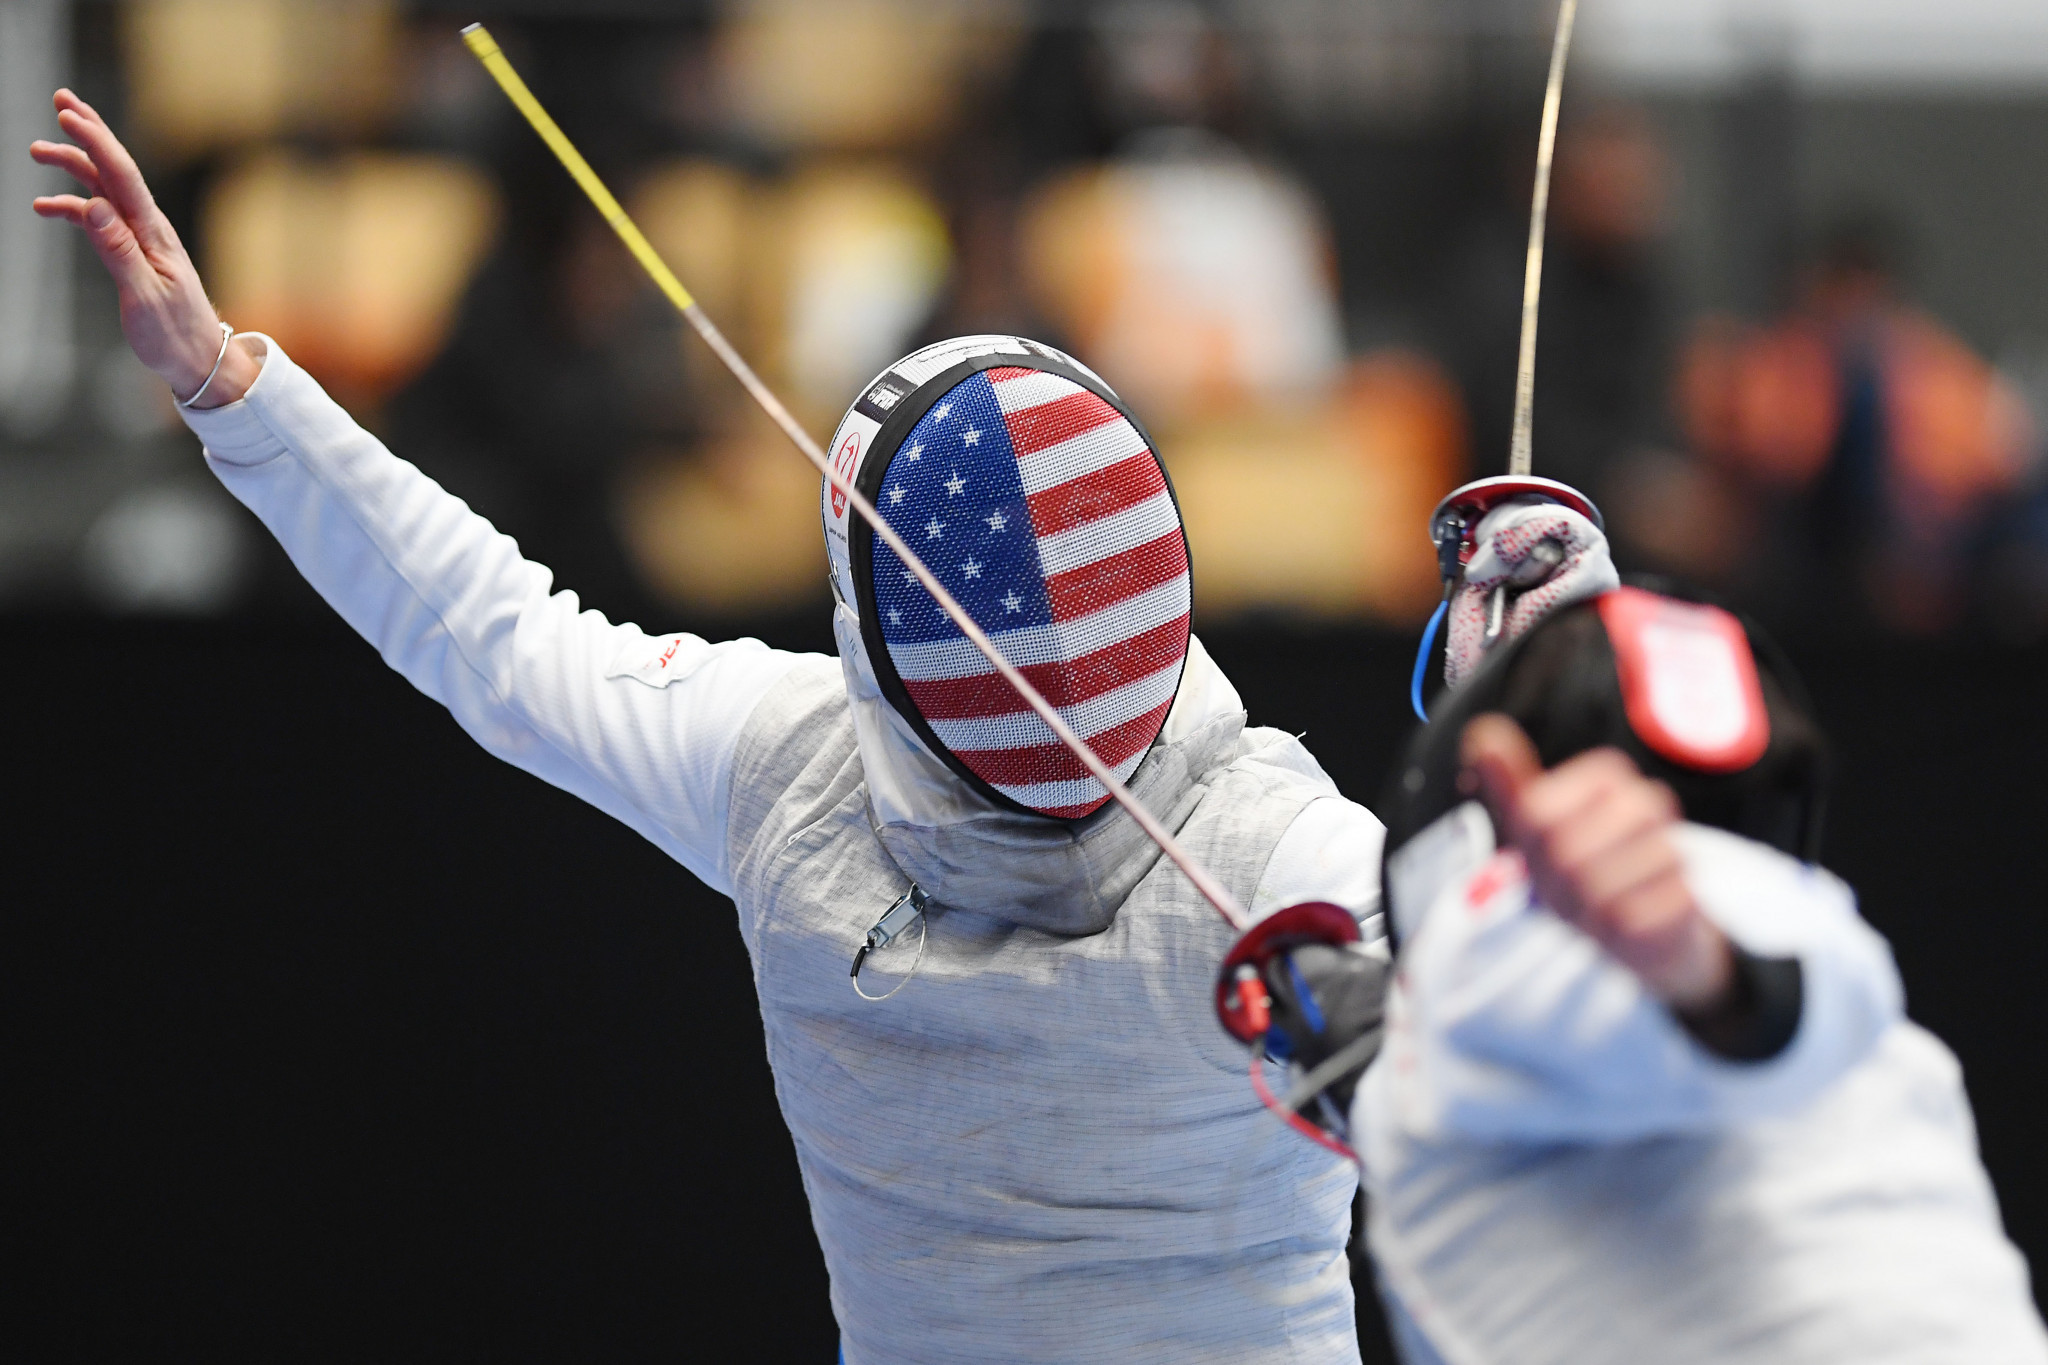 Imboden and Deriglazova headline men's and women's fields for FIE Foil World Cup in Cairo